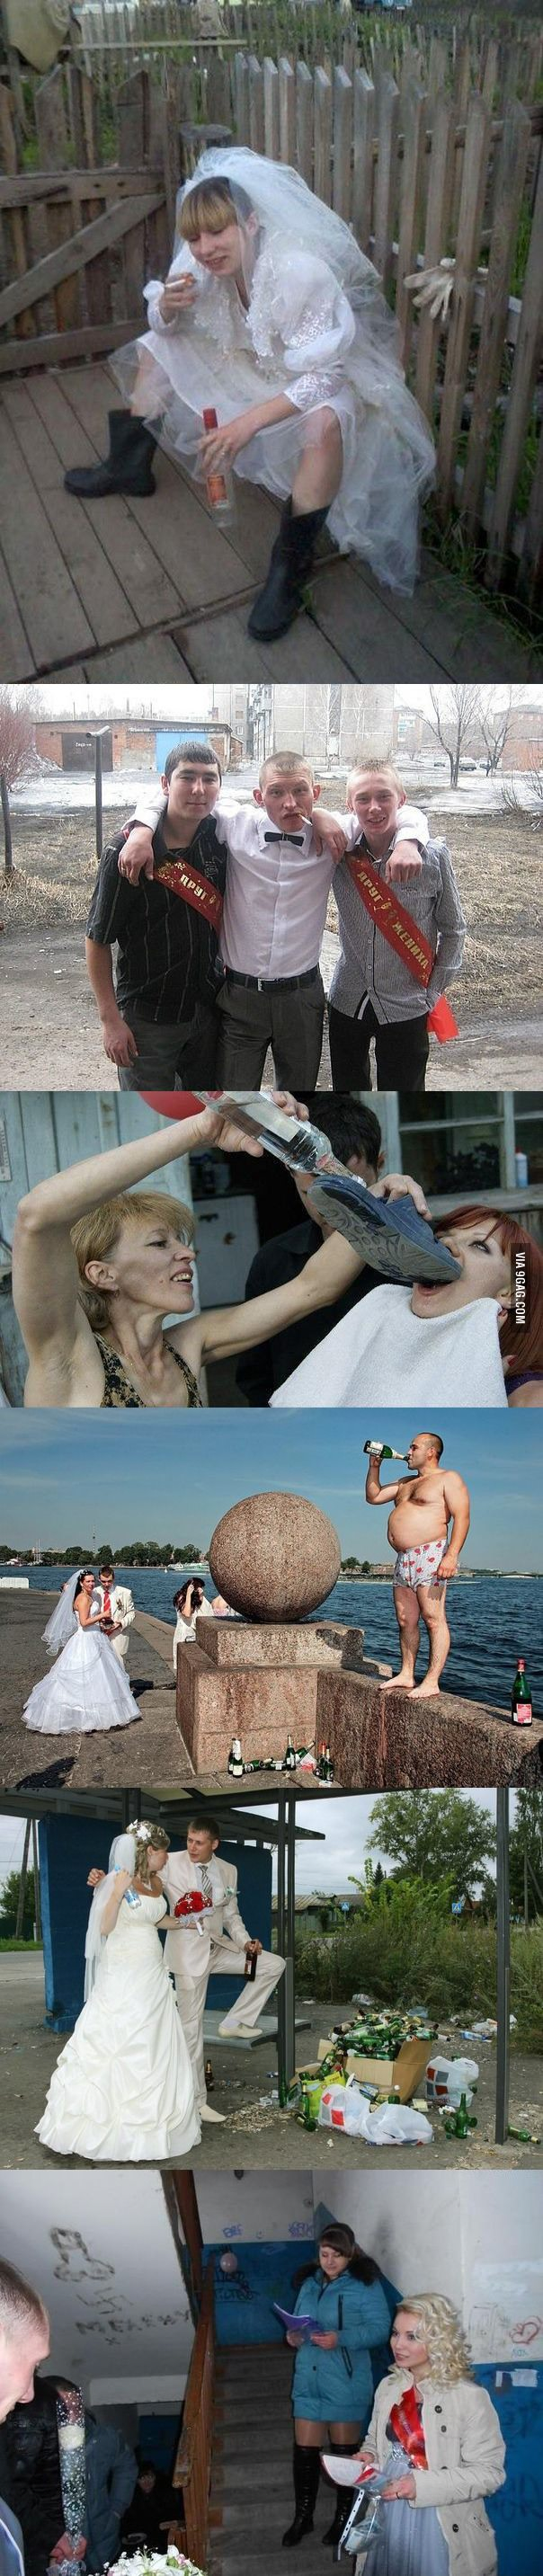 Weirdest russian wedding pictures